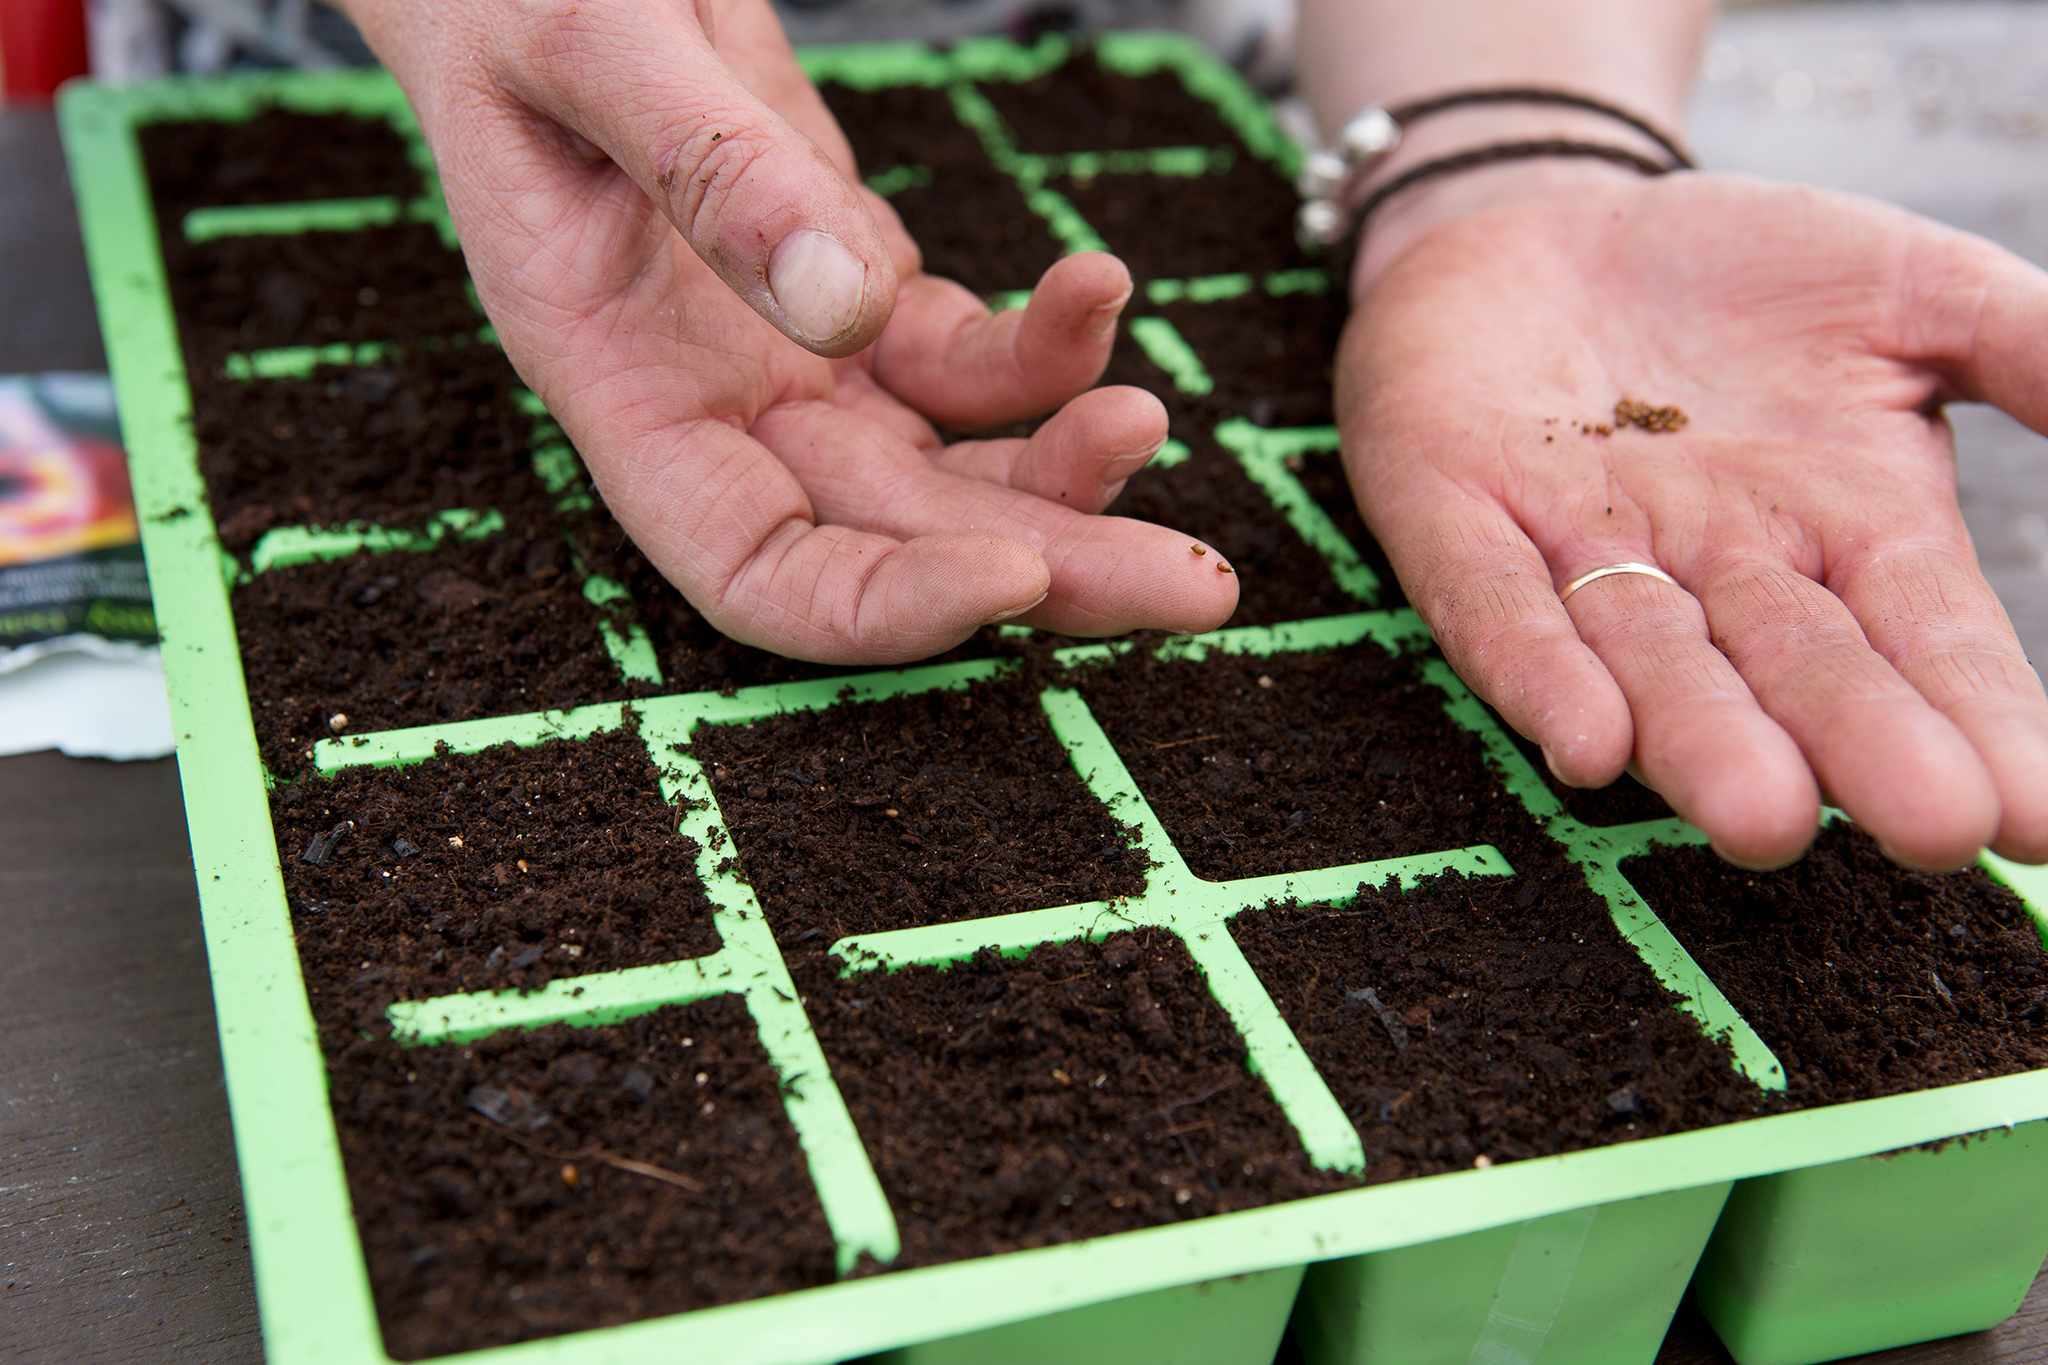 Sowing seed into modular trays